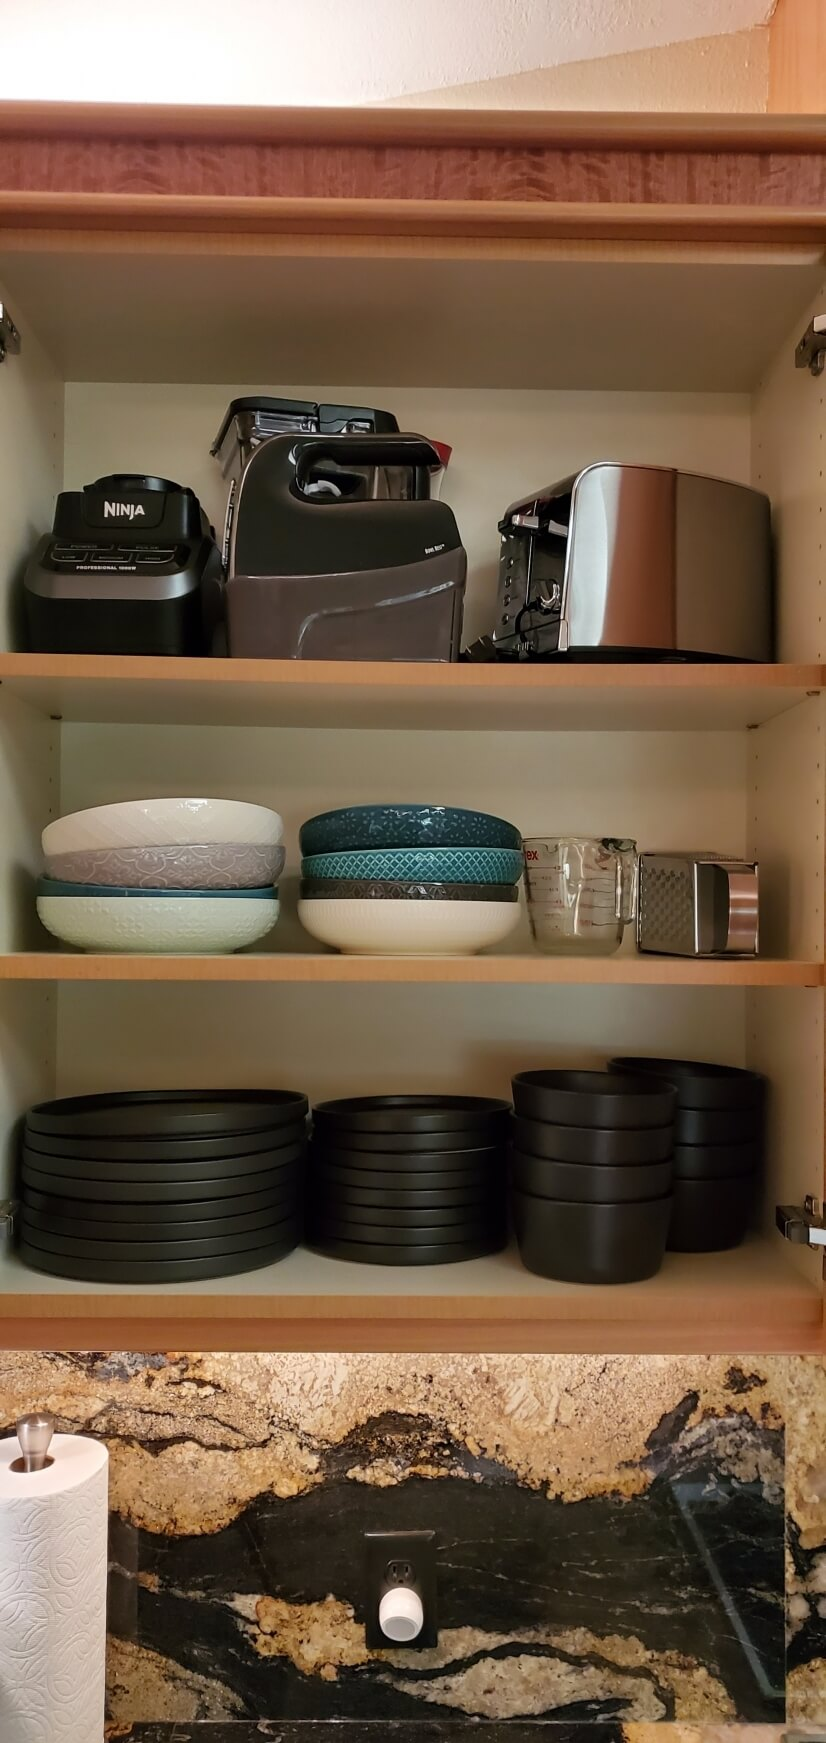 Small Appliances and plenty of plates